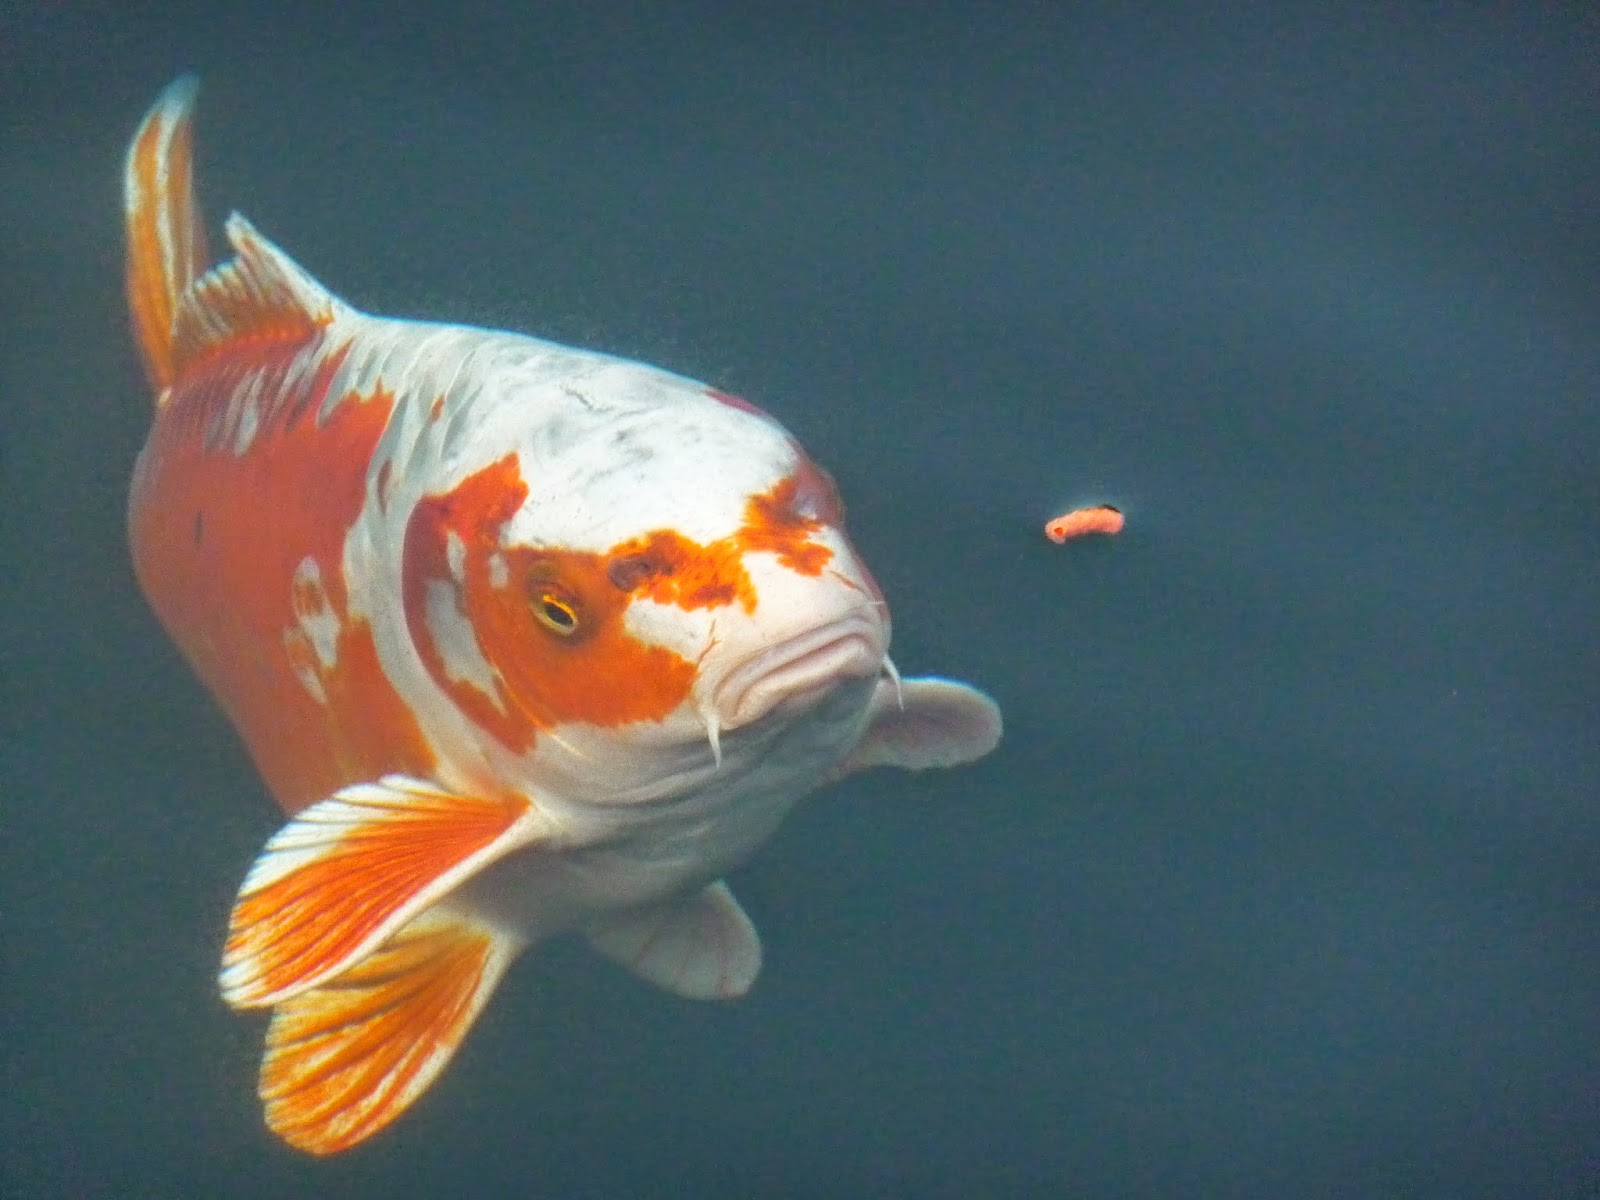 The koi fish japanese carp the experienced eye of the koi breeder looks for more than colors and patterns in the young fish that conform as closely as possible to the standards biocorpaavc